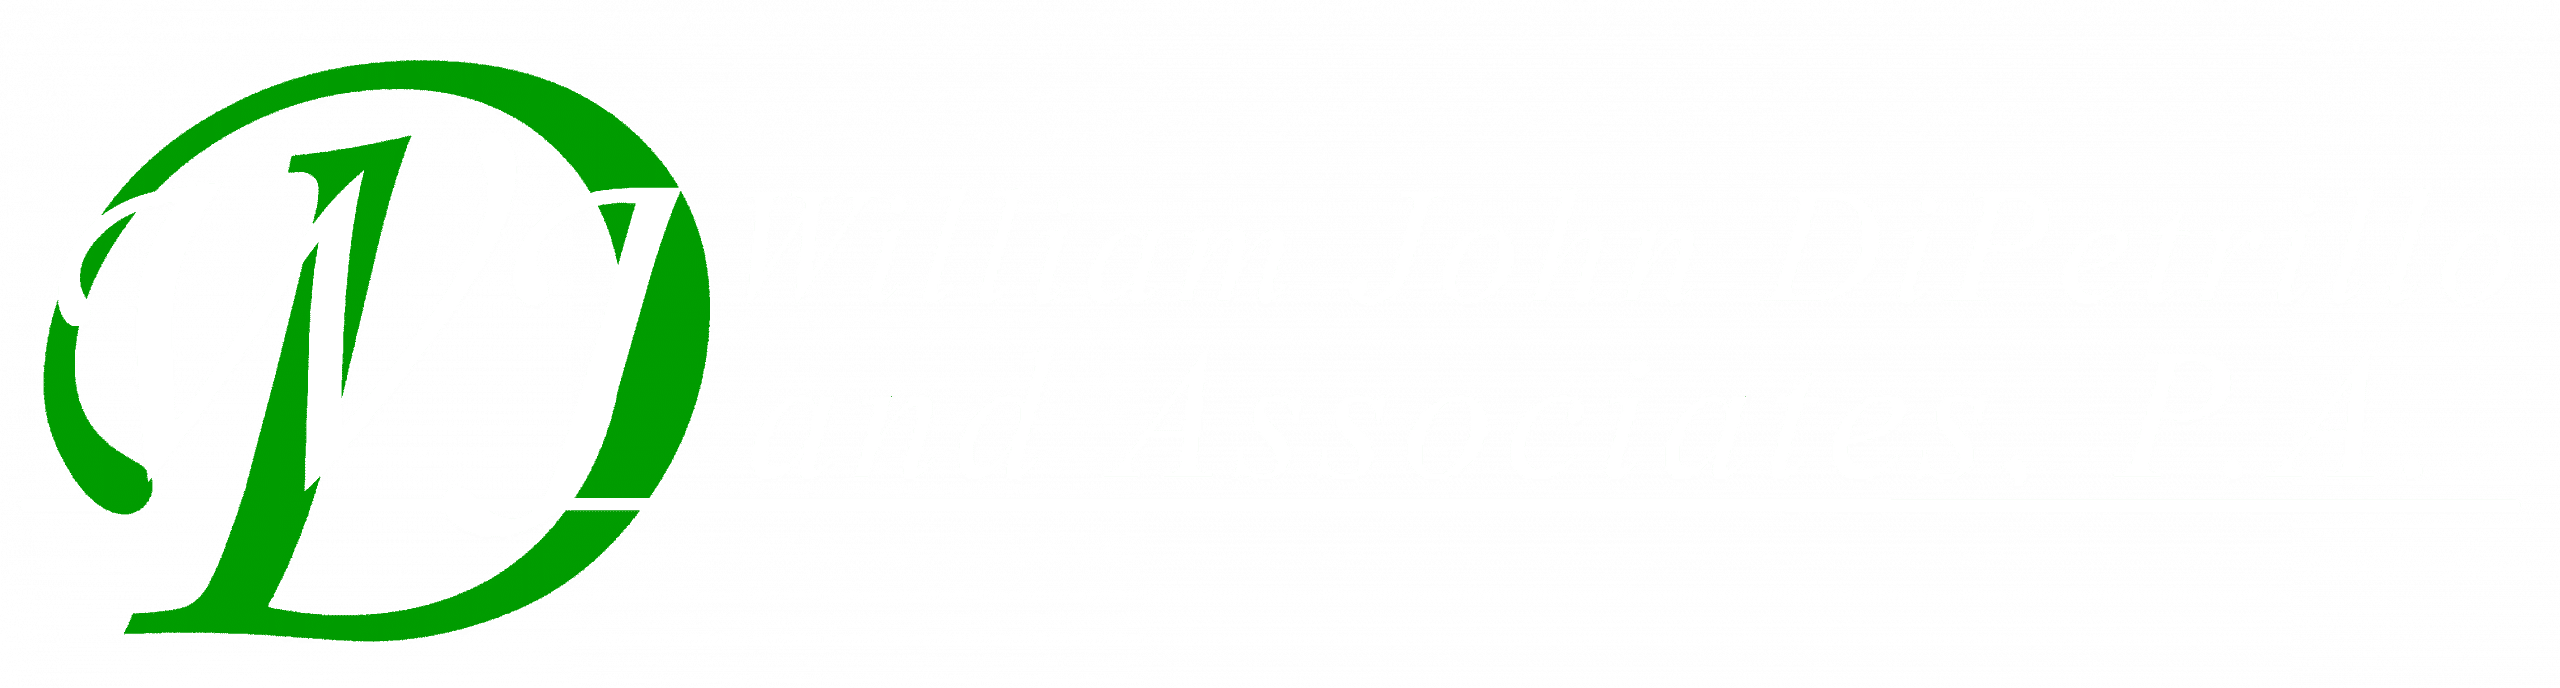 William John DiPetrillo logo